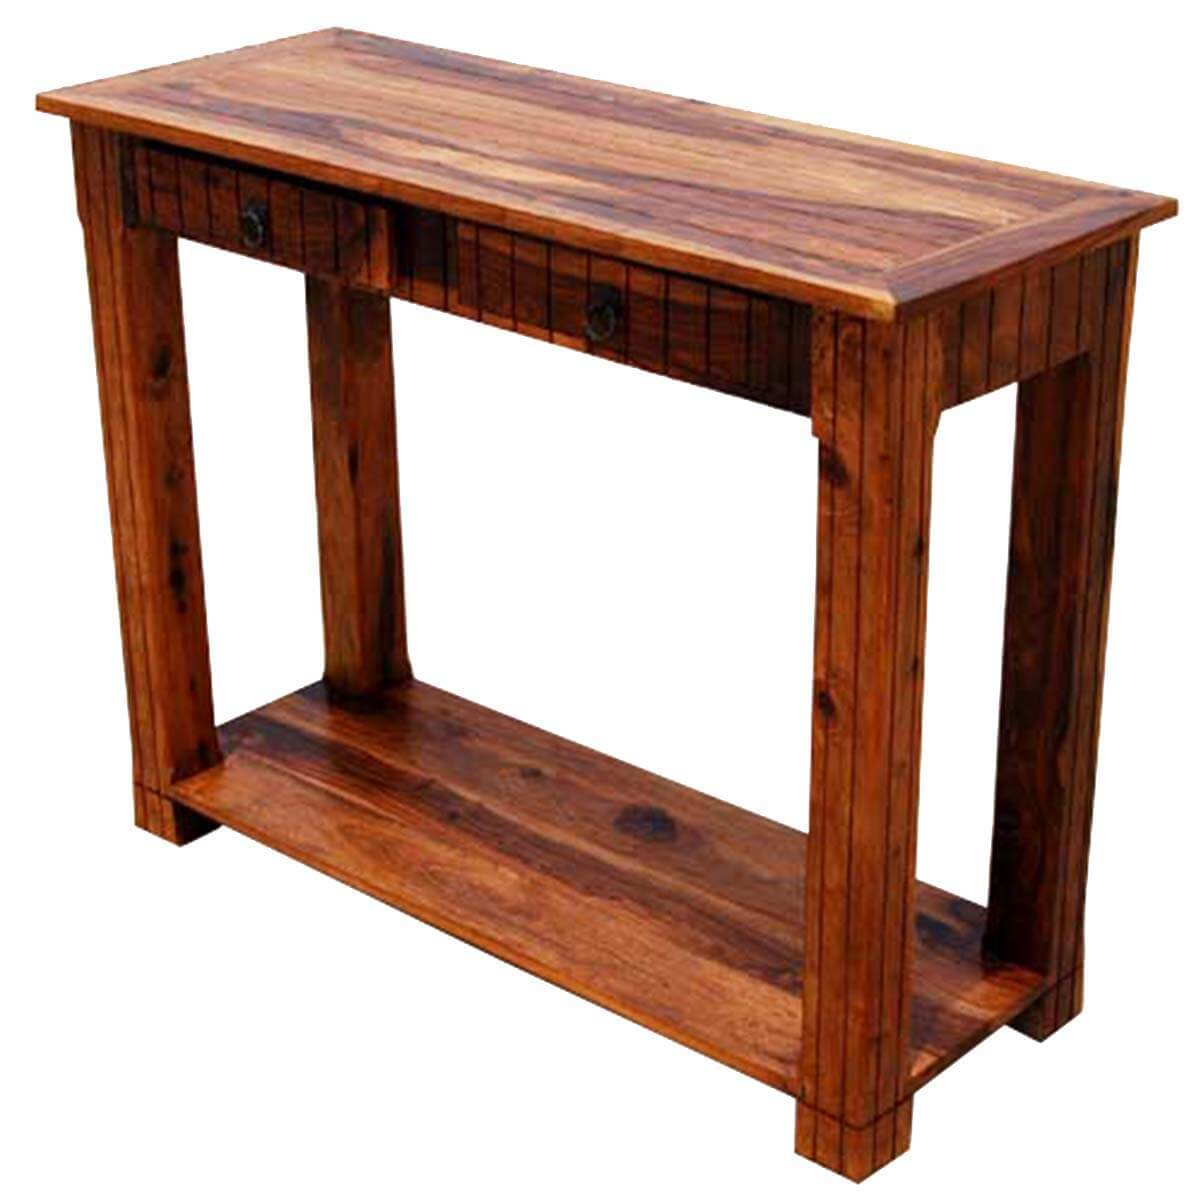 Foyer Furniture For Storage : Solid wood storage drawer sofa entryway console table